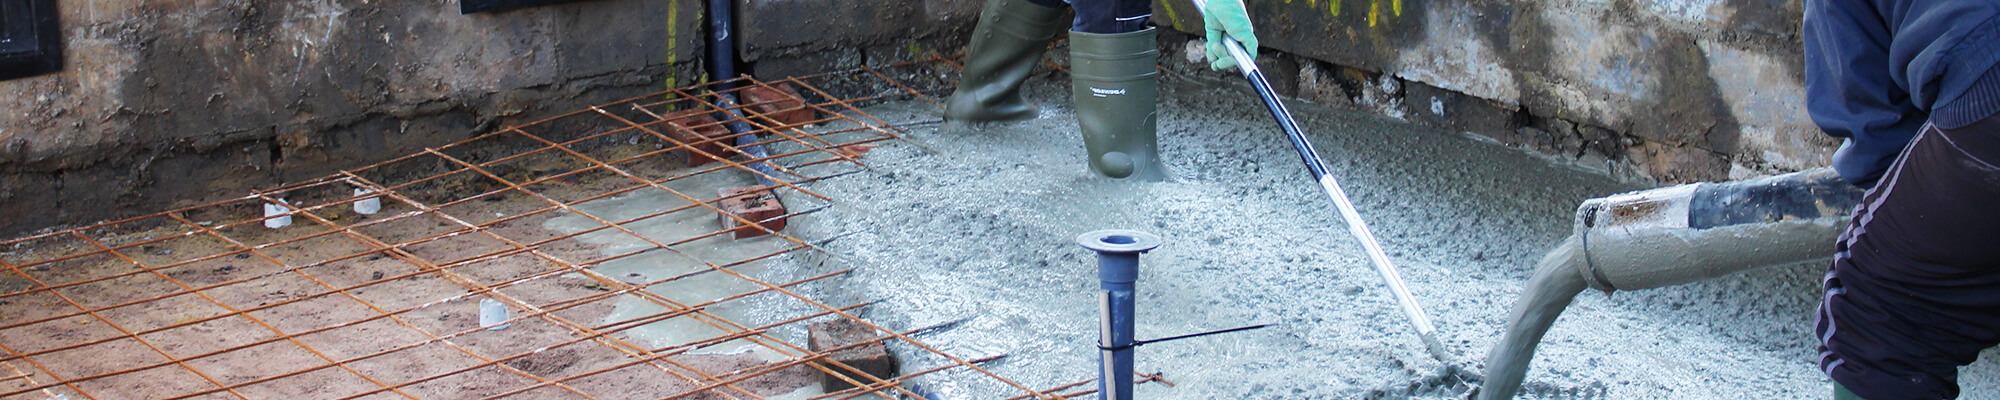 Domestic Concrete Suppliers In London Easymix Concrete